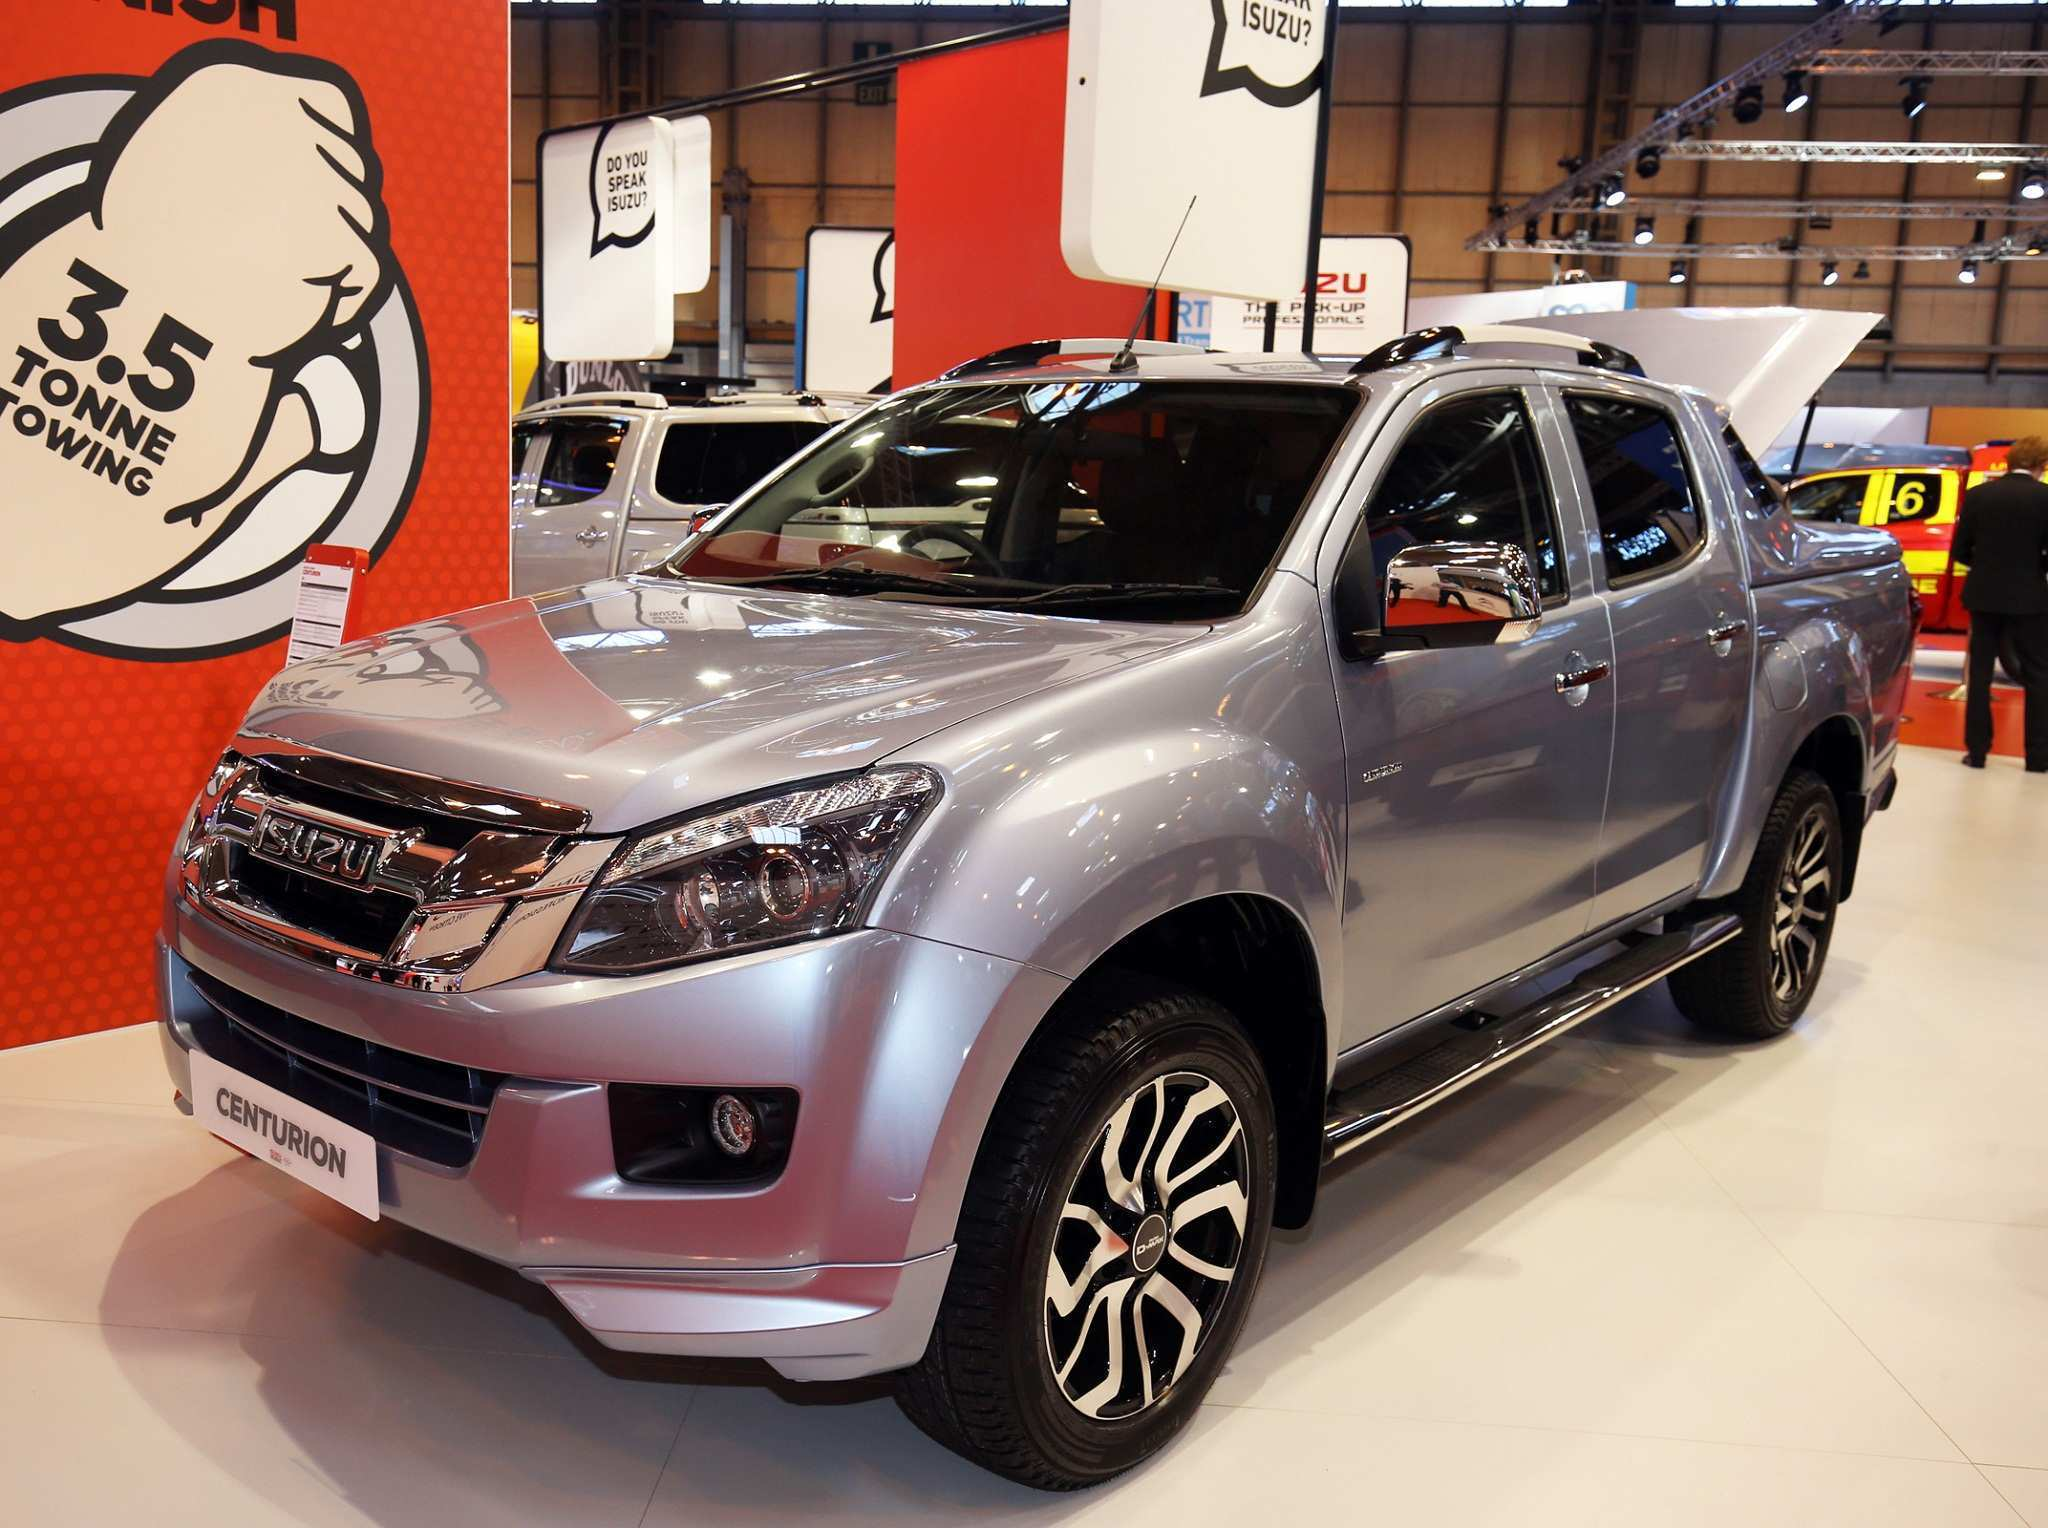 63 New 2020 Isuzu Dmax 2018 Model for 2020 Isuzu Dmax 2018